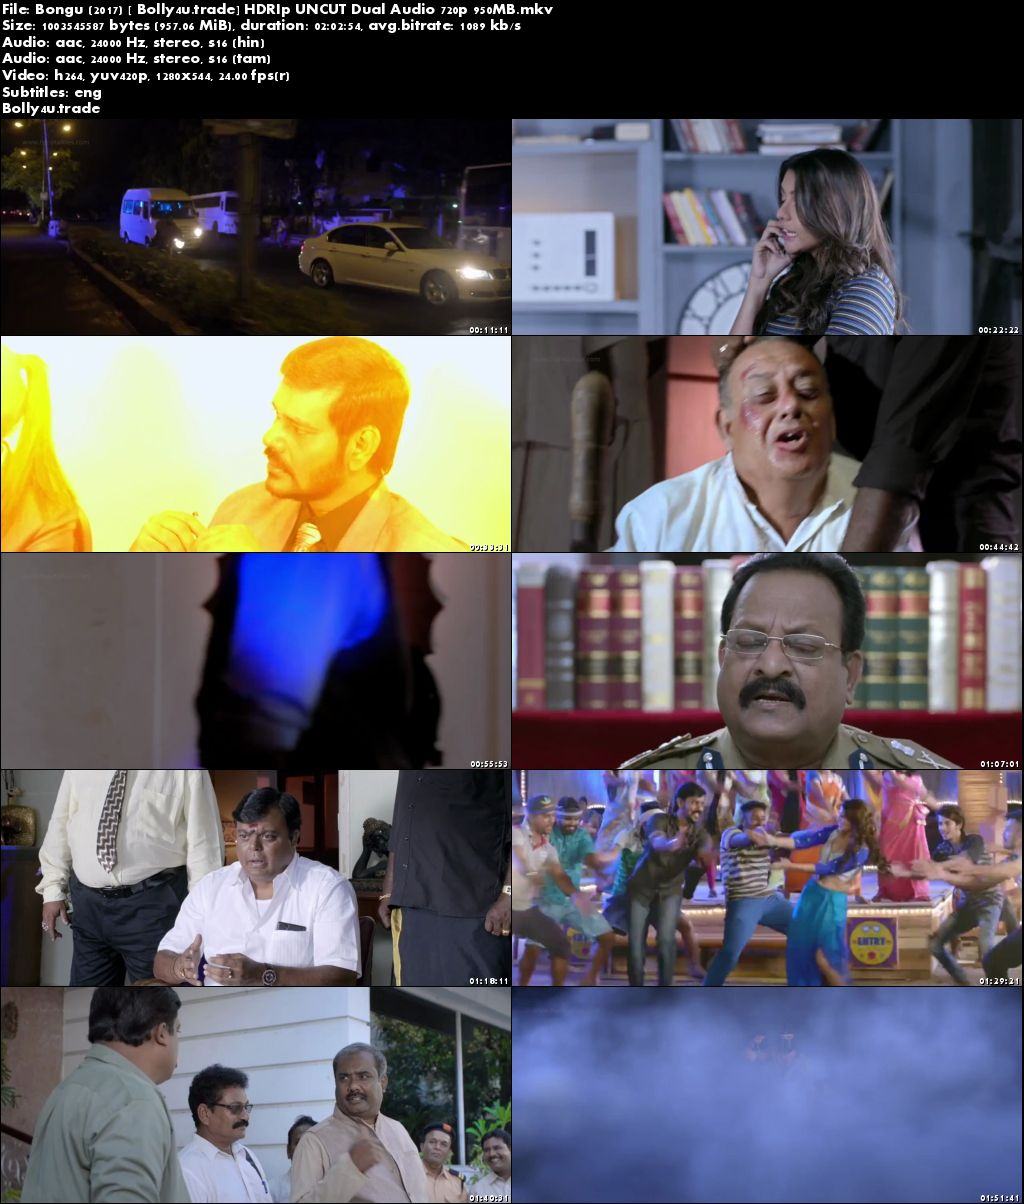 Venom 2018 Hdts 650Mb Full Hindi Dubbed Movie Download 720P